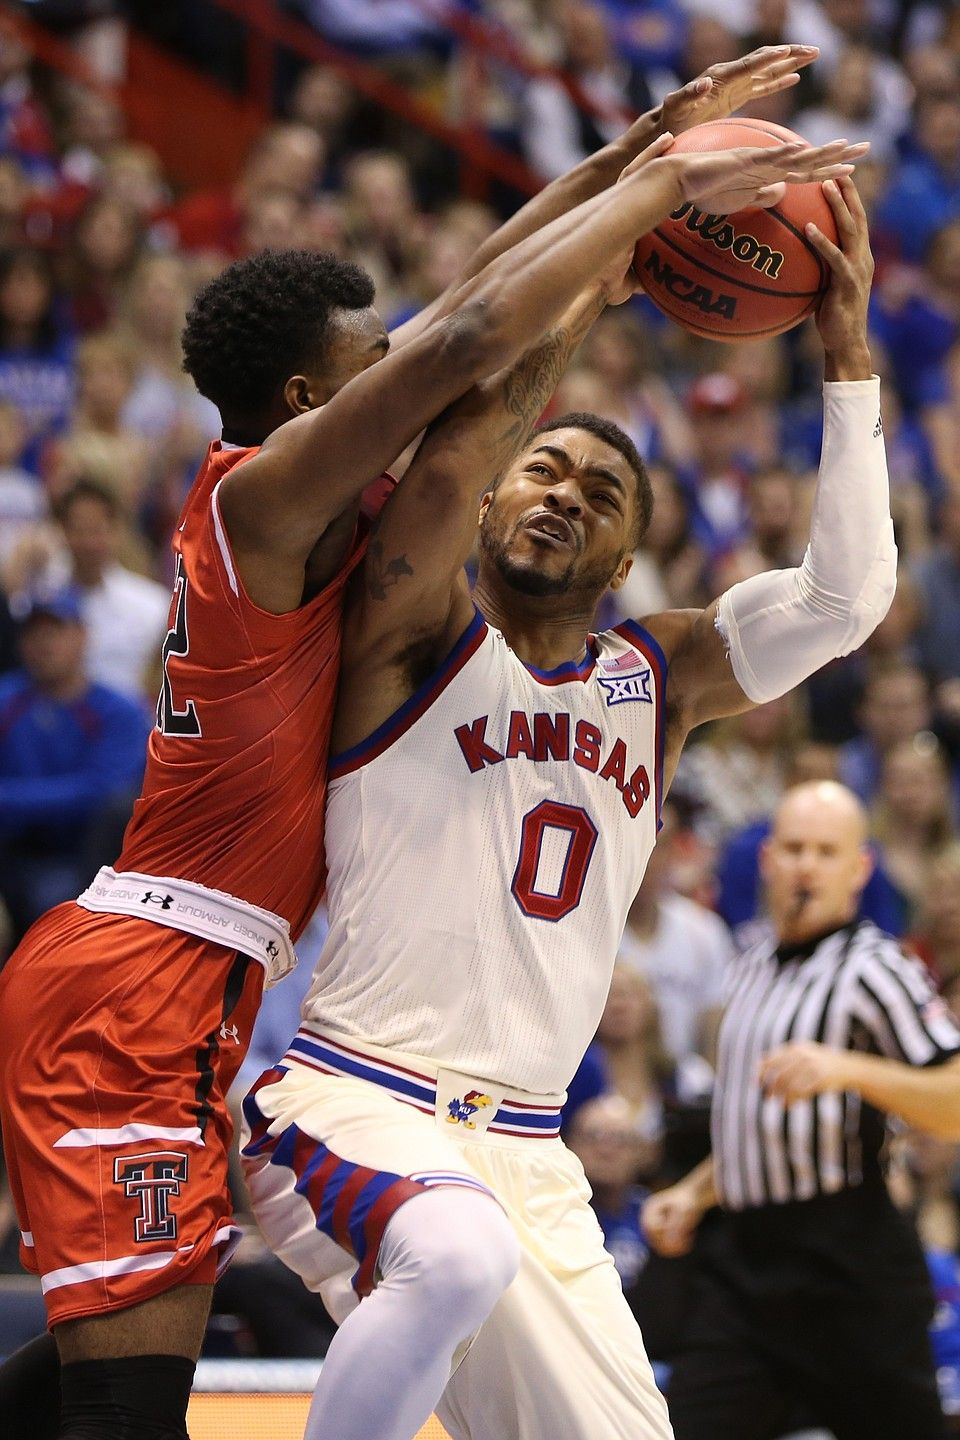 Kansas basketball v. Texas Tech Kansas basketball, Texas